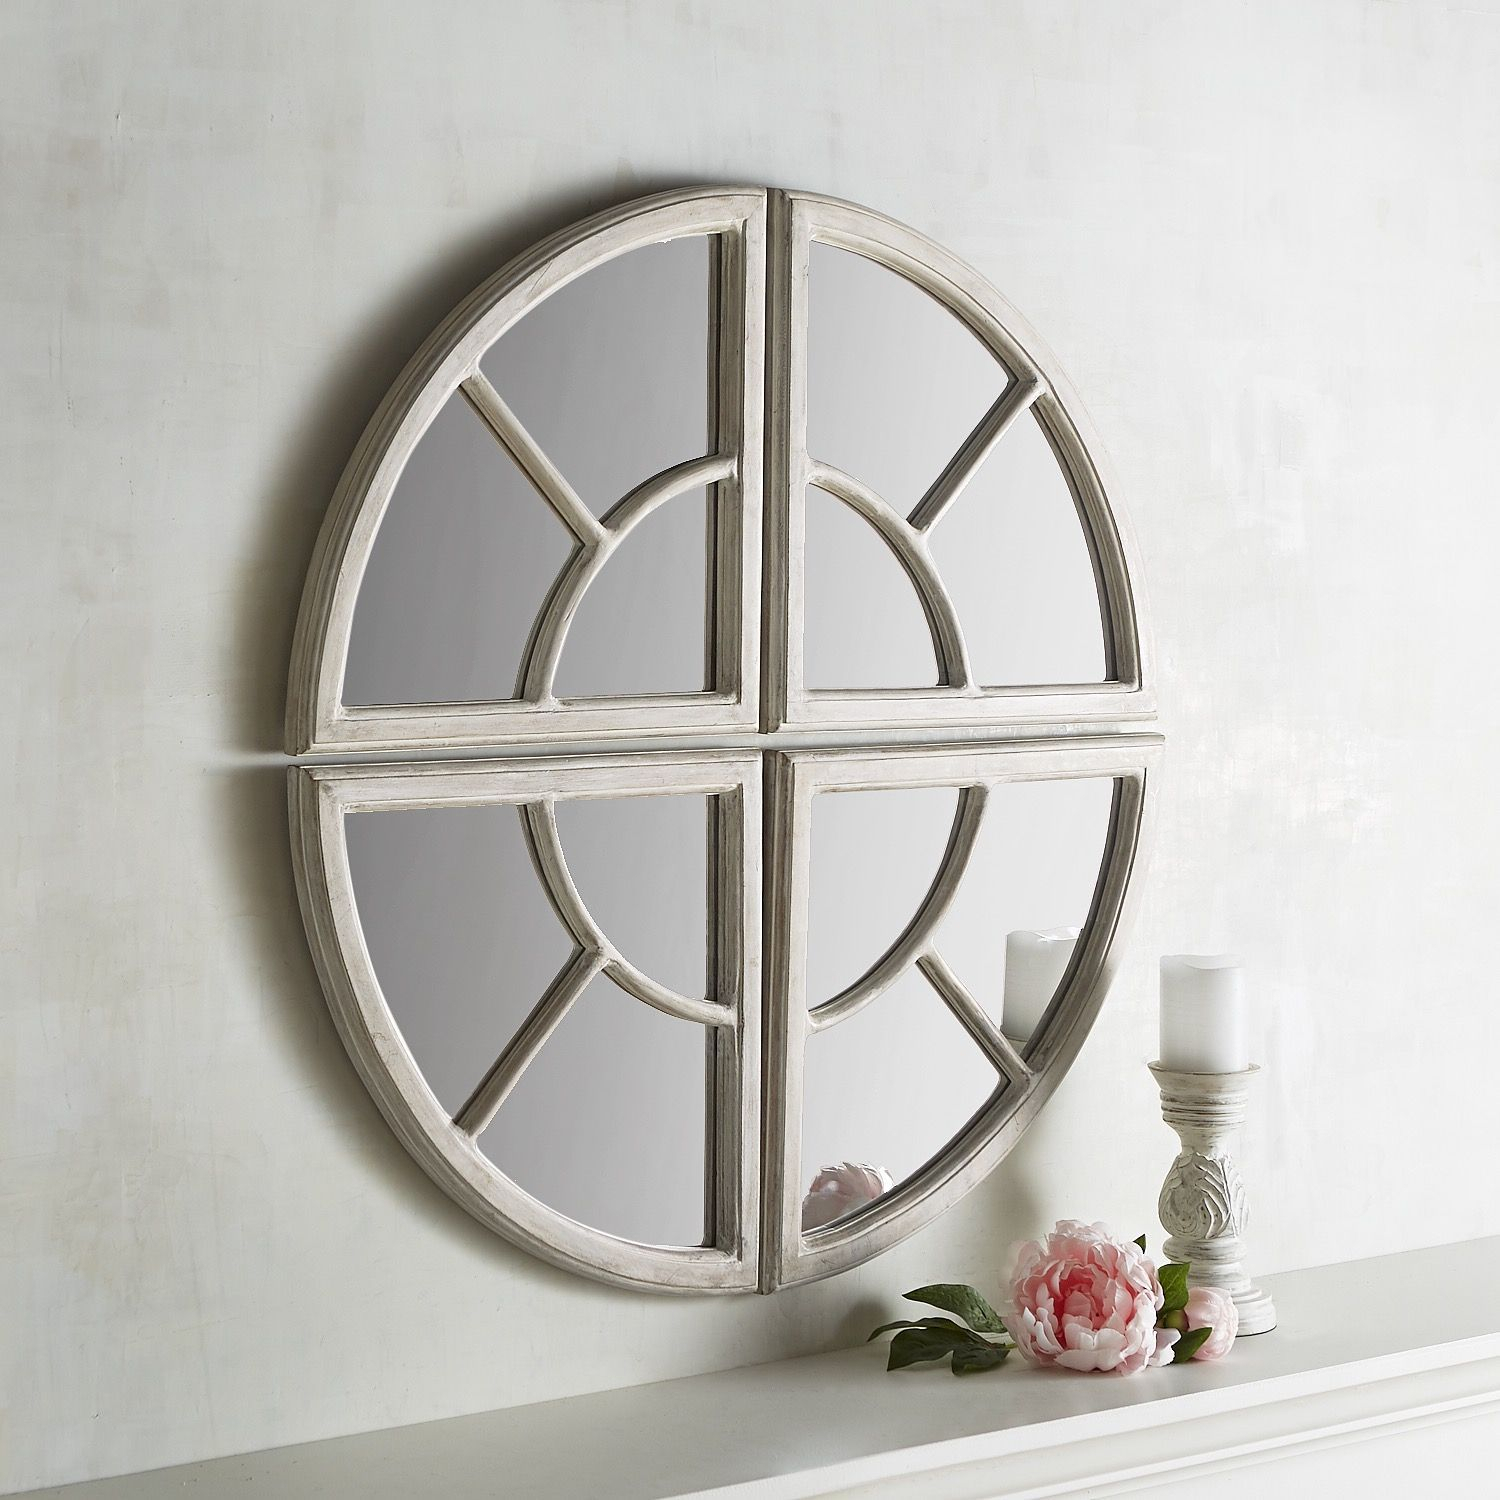 Maddie 4 Piece Wooden Round Mirror Set White | *decor Intended For Polito Cottage/country Wall Mirrors (Image 10 of 20)